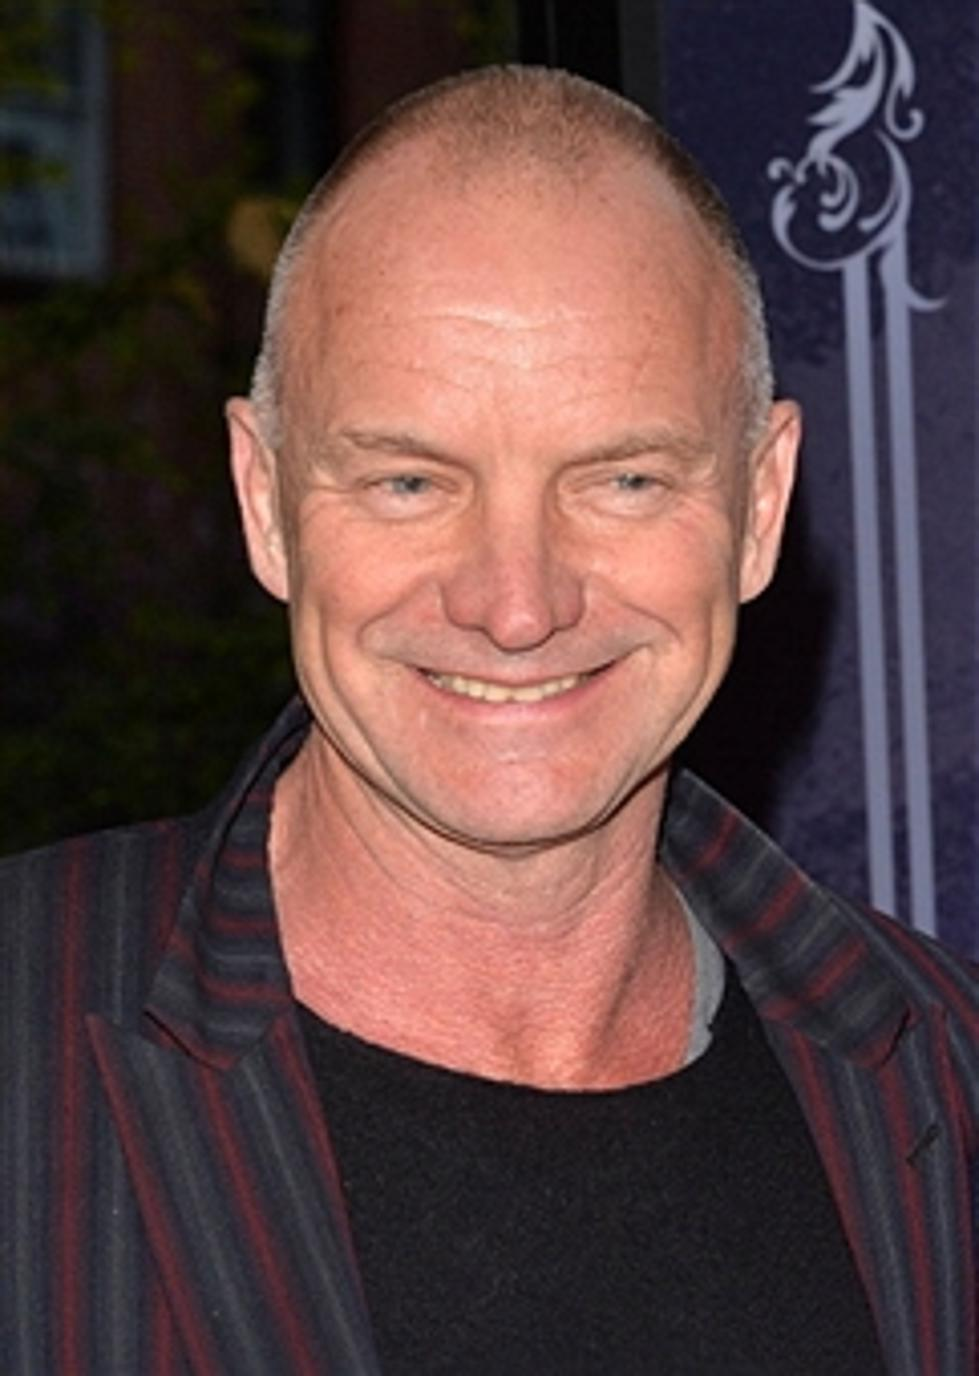 Thursday October 2nd Happy Birthday Sting